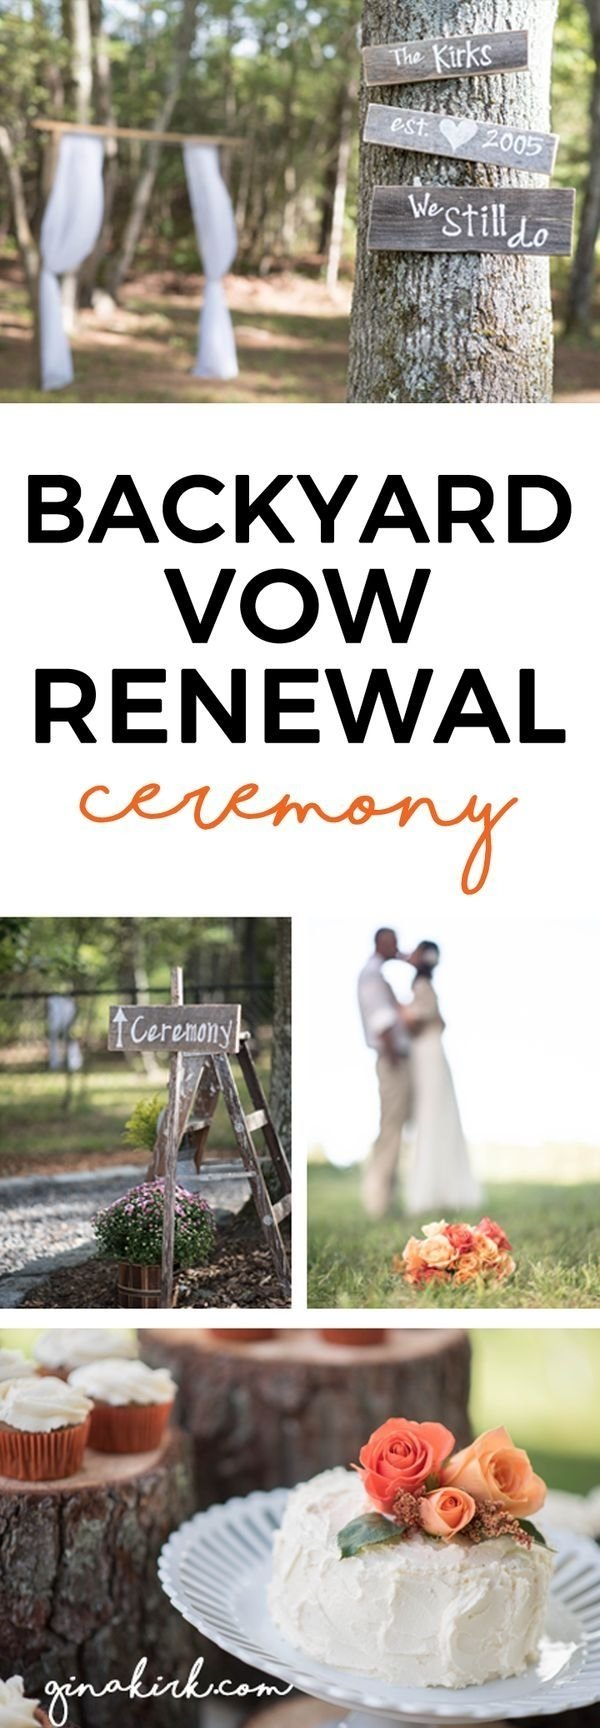 10 Perfect Wedding Vow Renewal Ceremony Ideas 35 best vow renewal images on pinterest weddings dream wedding 2020